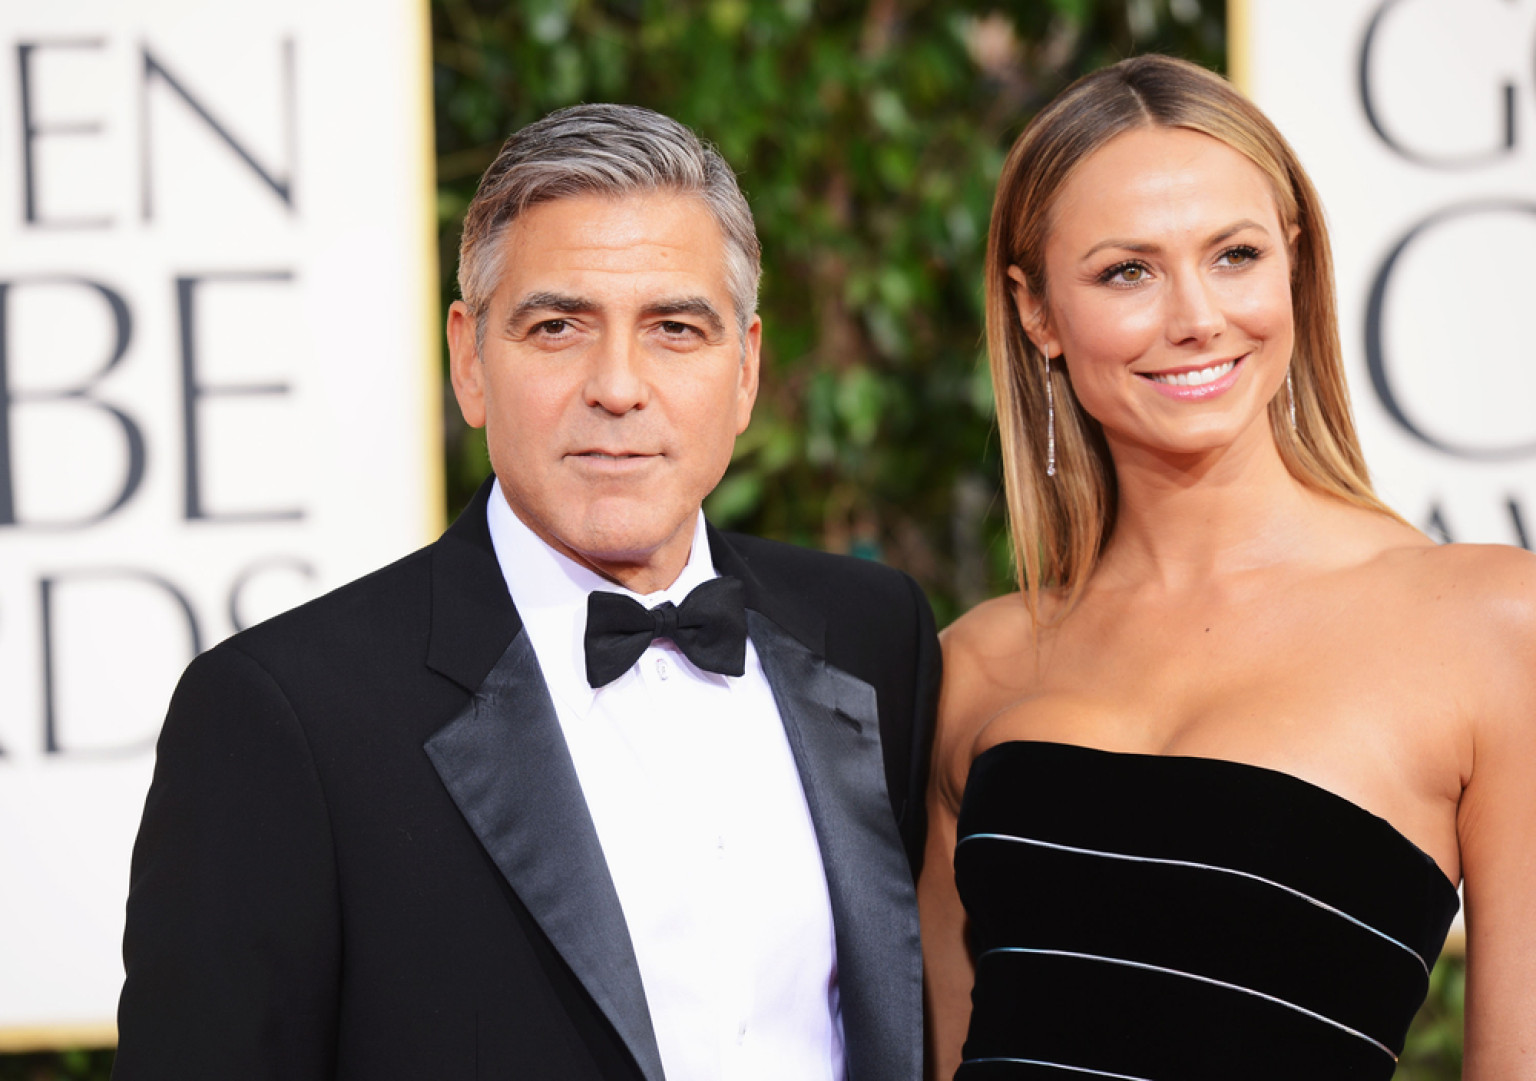 George Clooney and former girlfriend Stacy Keibler at the 70th annual Golden Globe Awards held at The Beverly Hilton Hotel on 13 January 2013 in Beverly Hills, California.